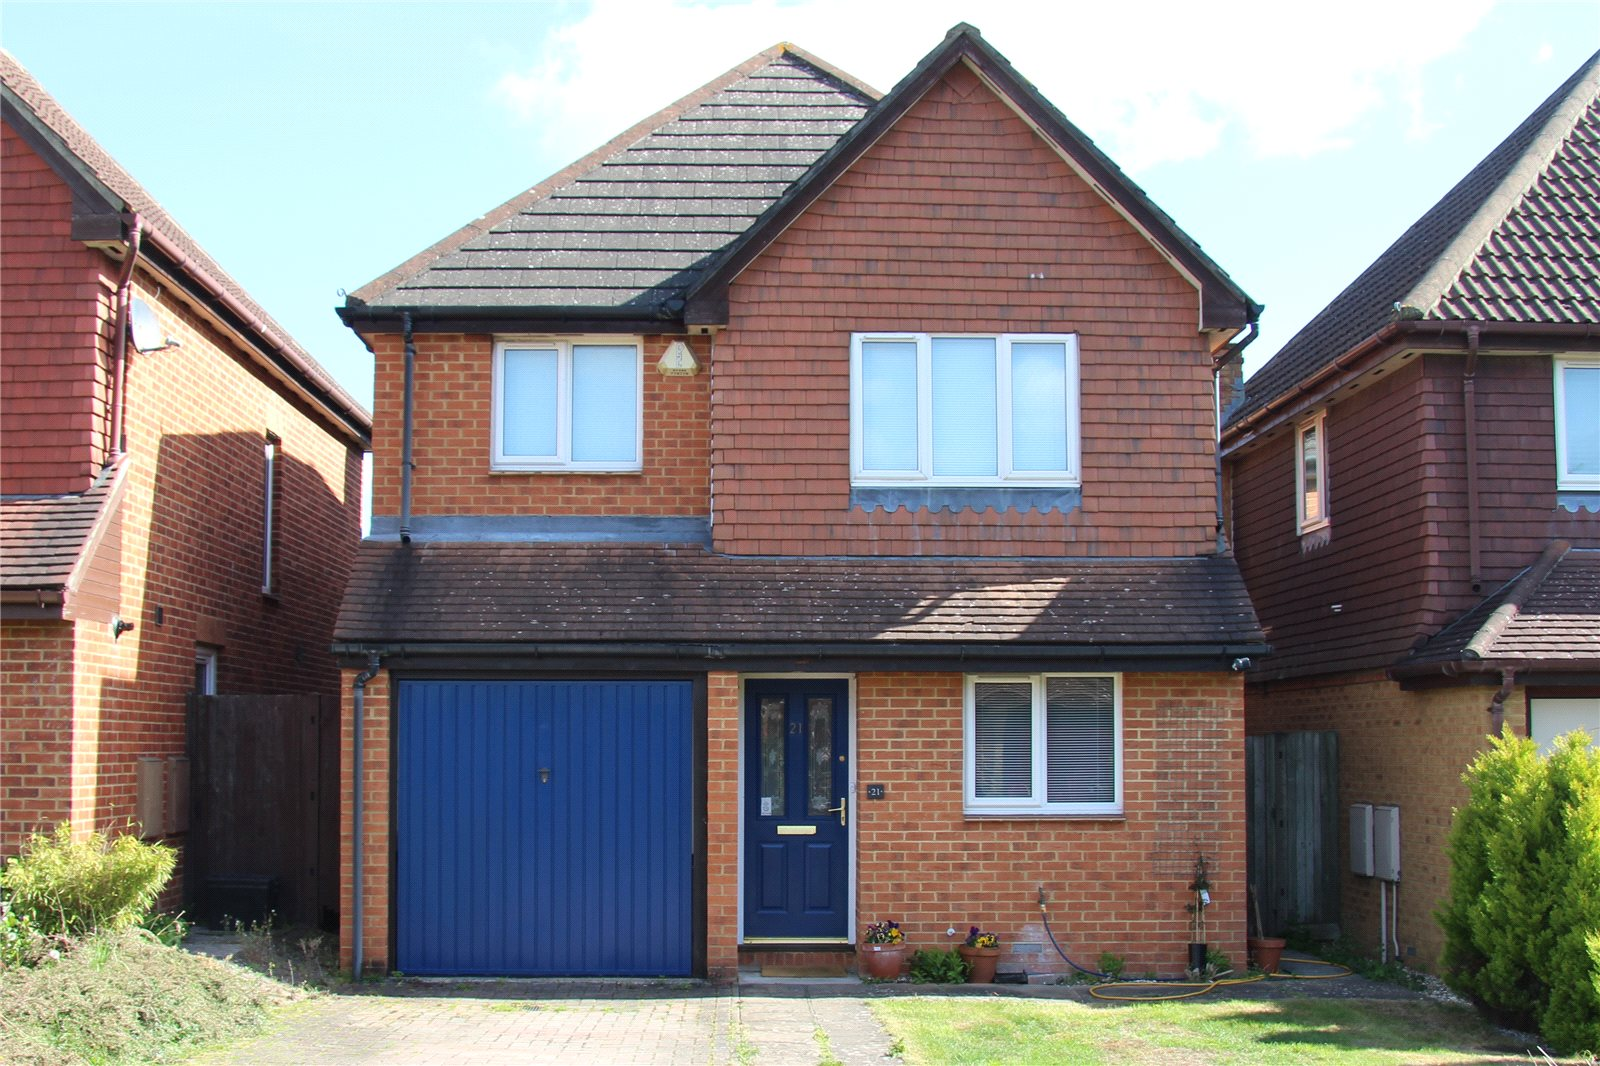 3 Bedrooms Detached House for sale in Hubbard Close, Twyford, Berkshire, RG10